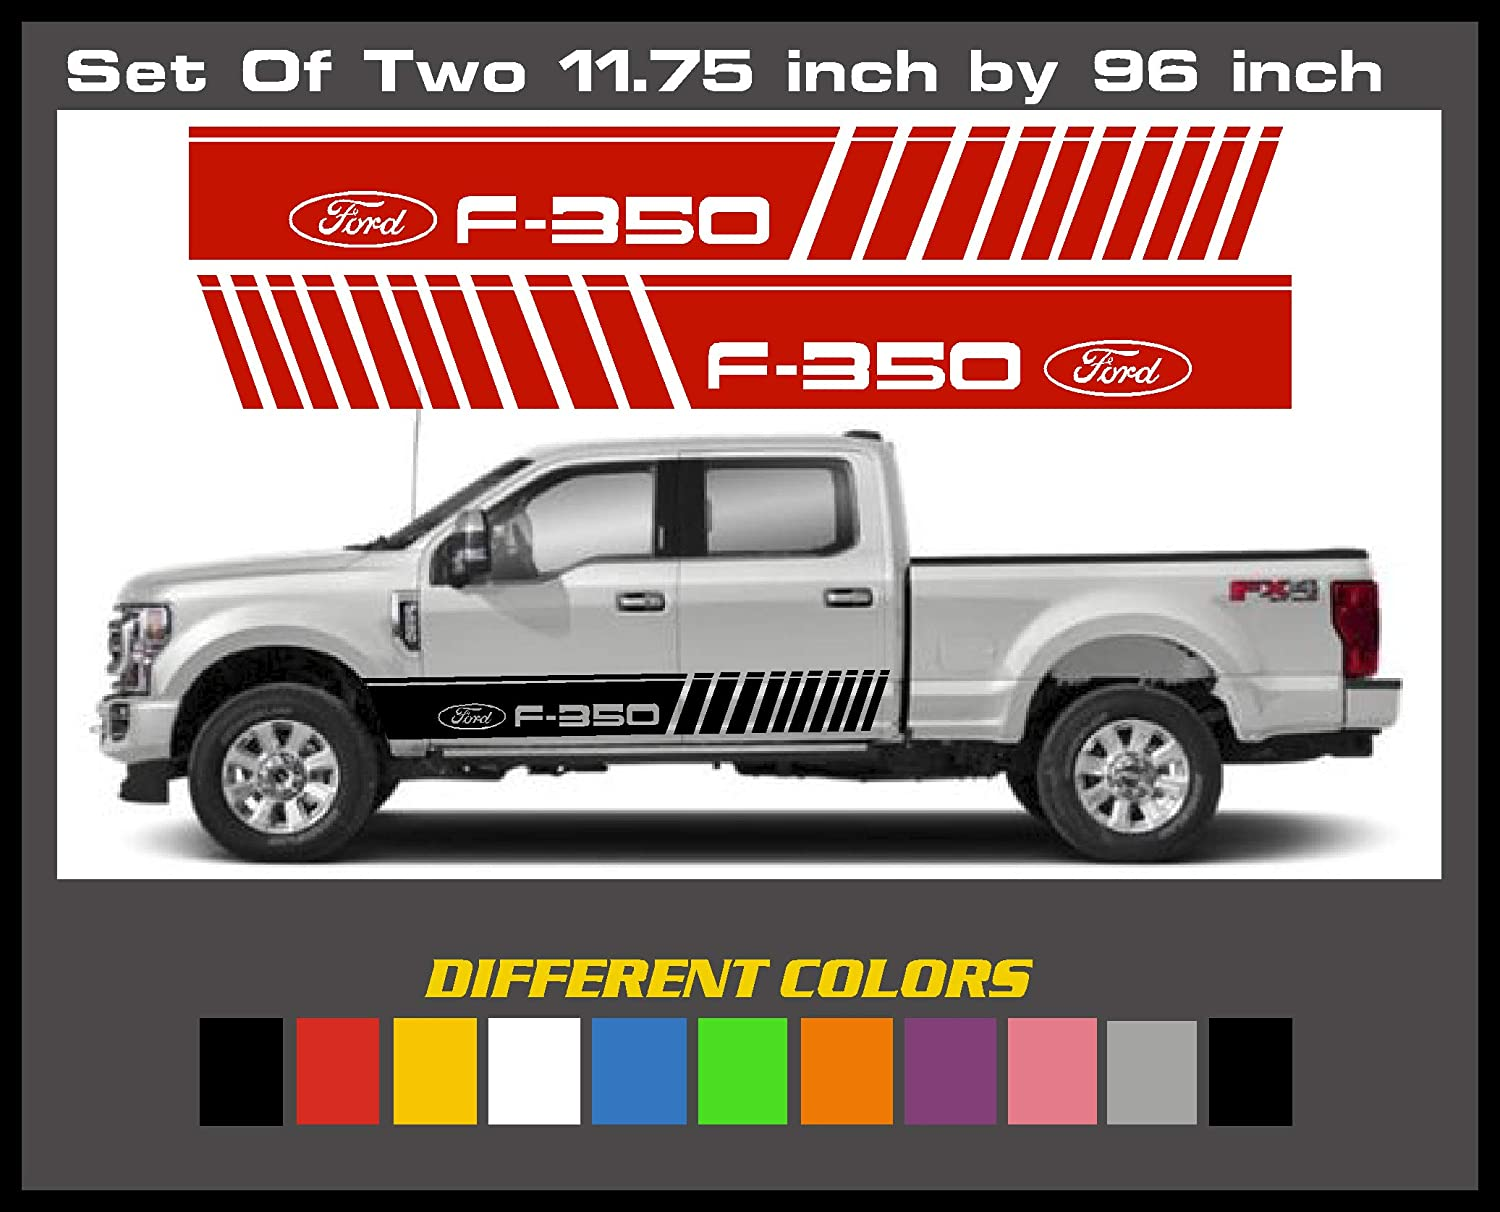 Set of 2-11.75 inch by 96 Inches Ford F-350 Truck Side Stripe Slash Mark Die Cut Decal Kit 6 to 8 Year Outdoor Life Sticker Graphic Stripe. Emblem